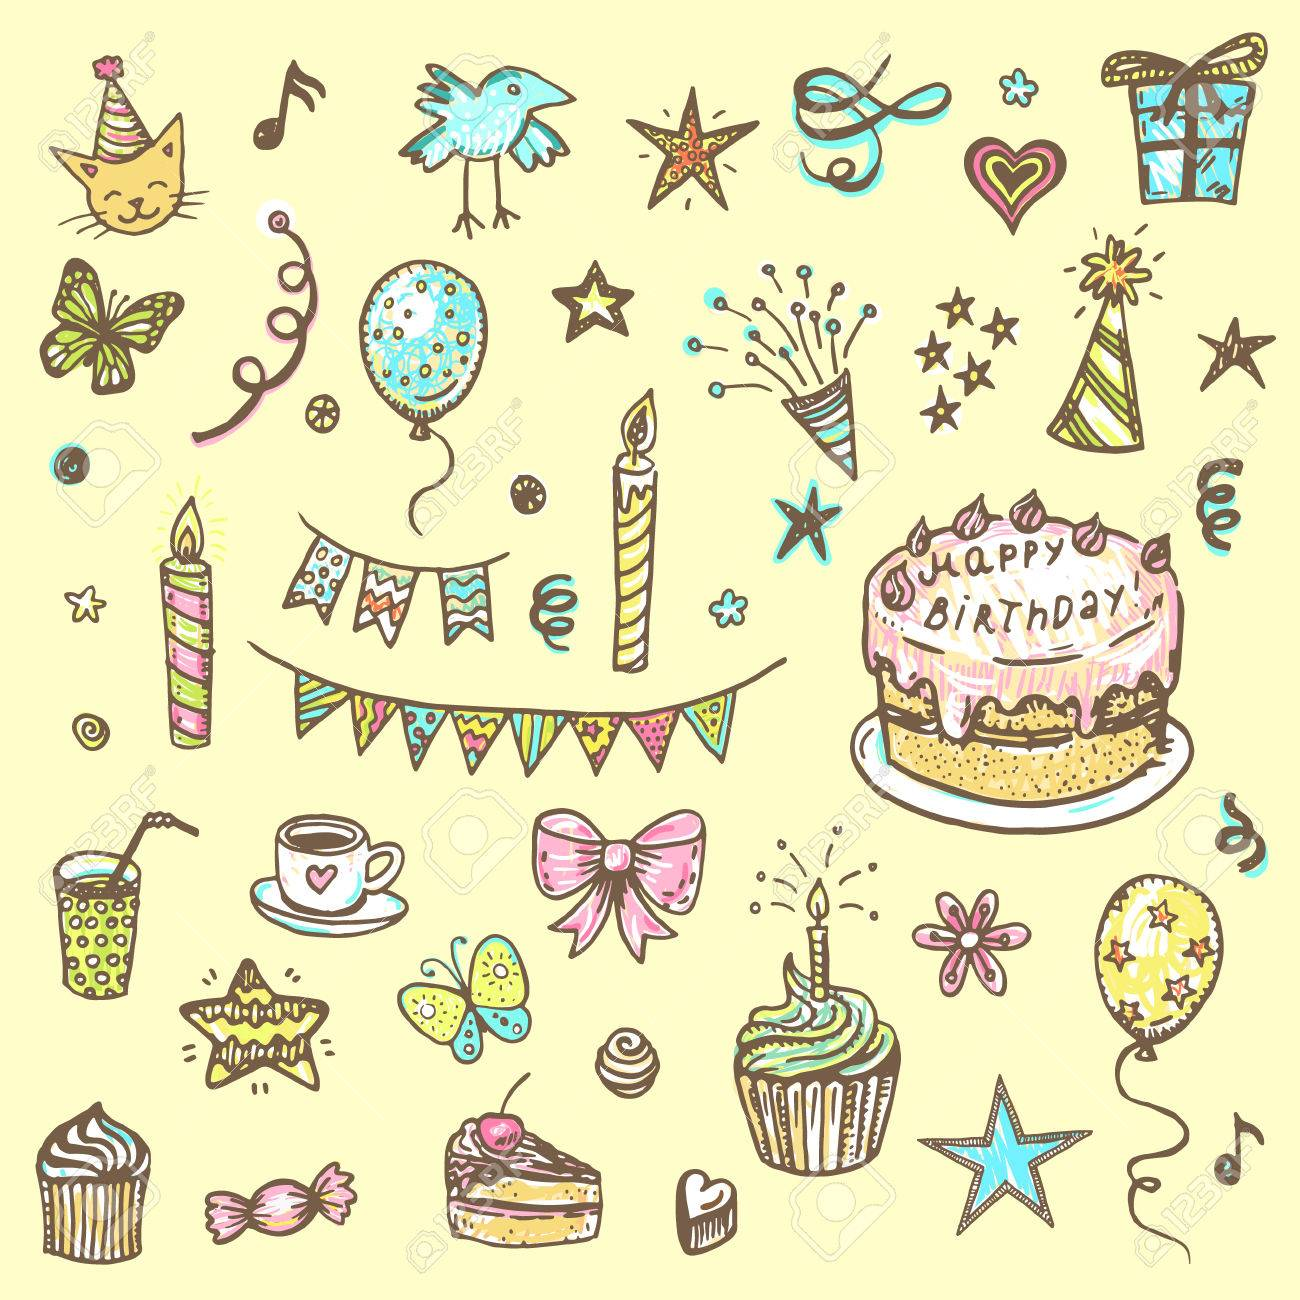 Miraculous Birthday Elements Hand Drawn Set With Birthday Cake Balloons Funny Birthday Cards Online Sheoxdamsfinfo